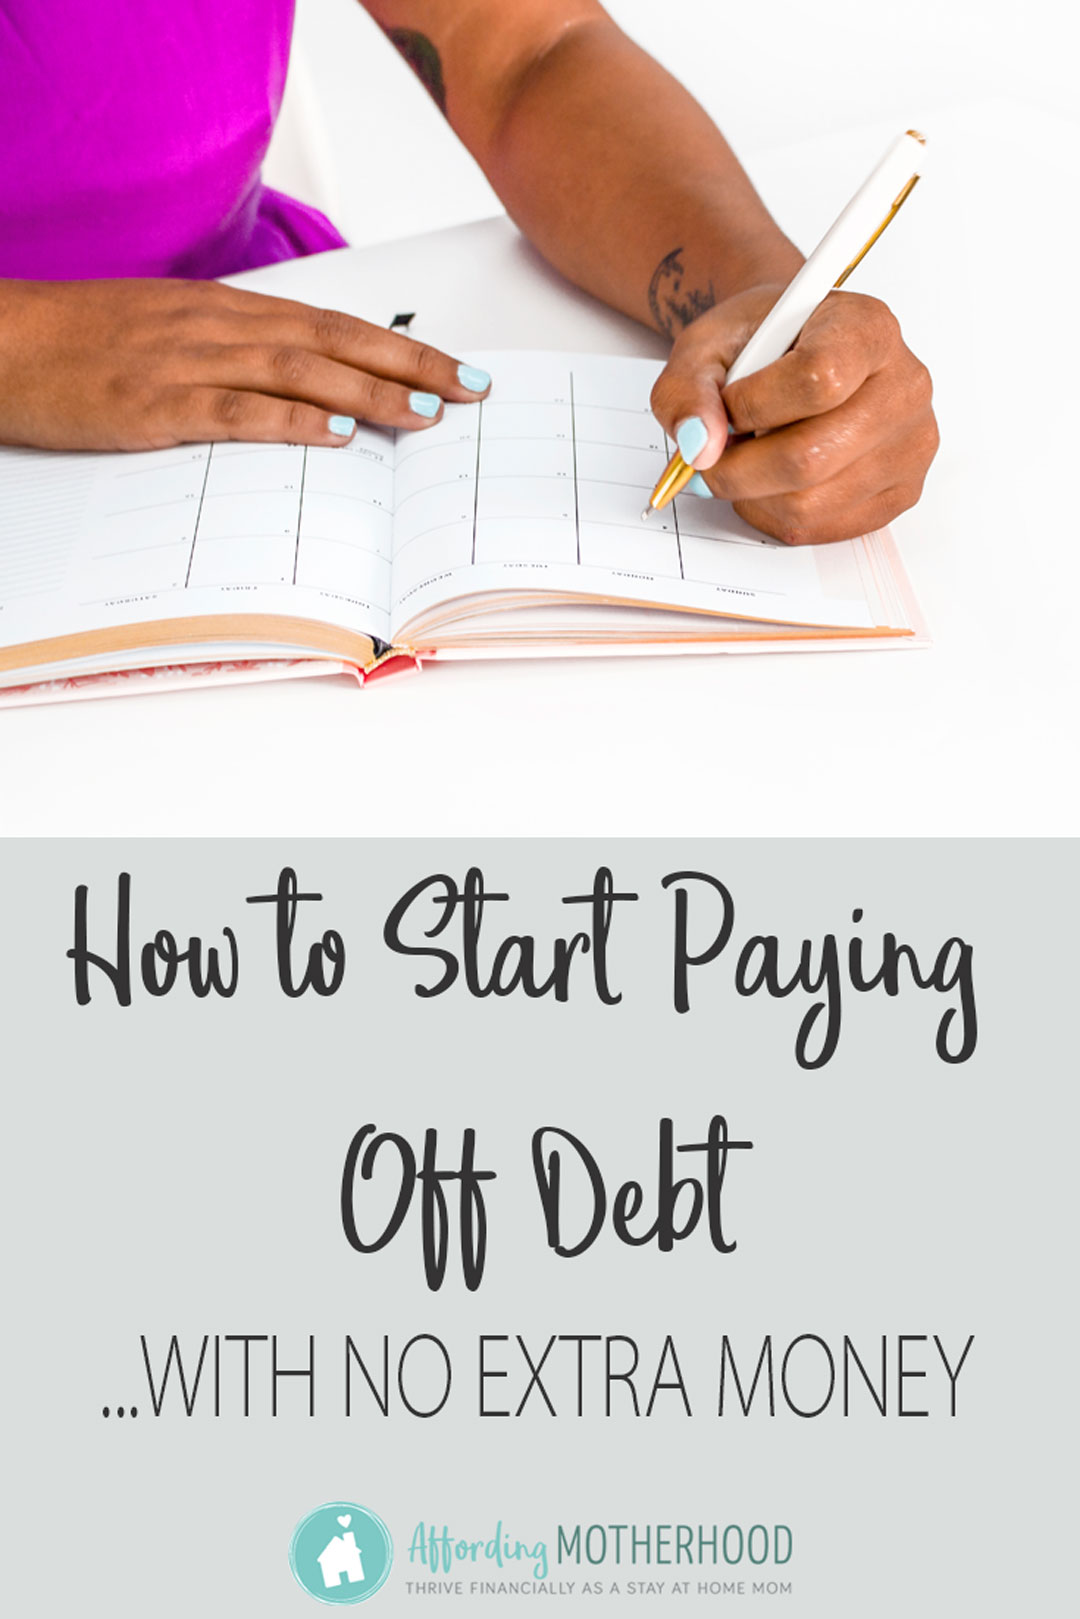 Even if you think you can't make a dent in your debt, try this simple tip to start paying off debt fast.